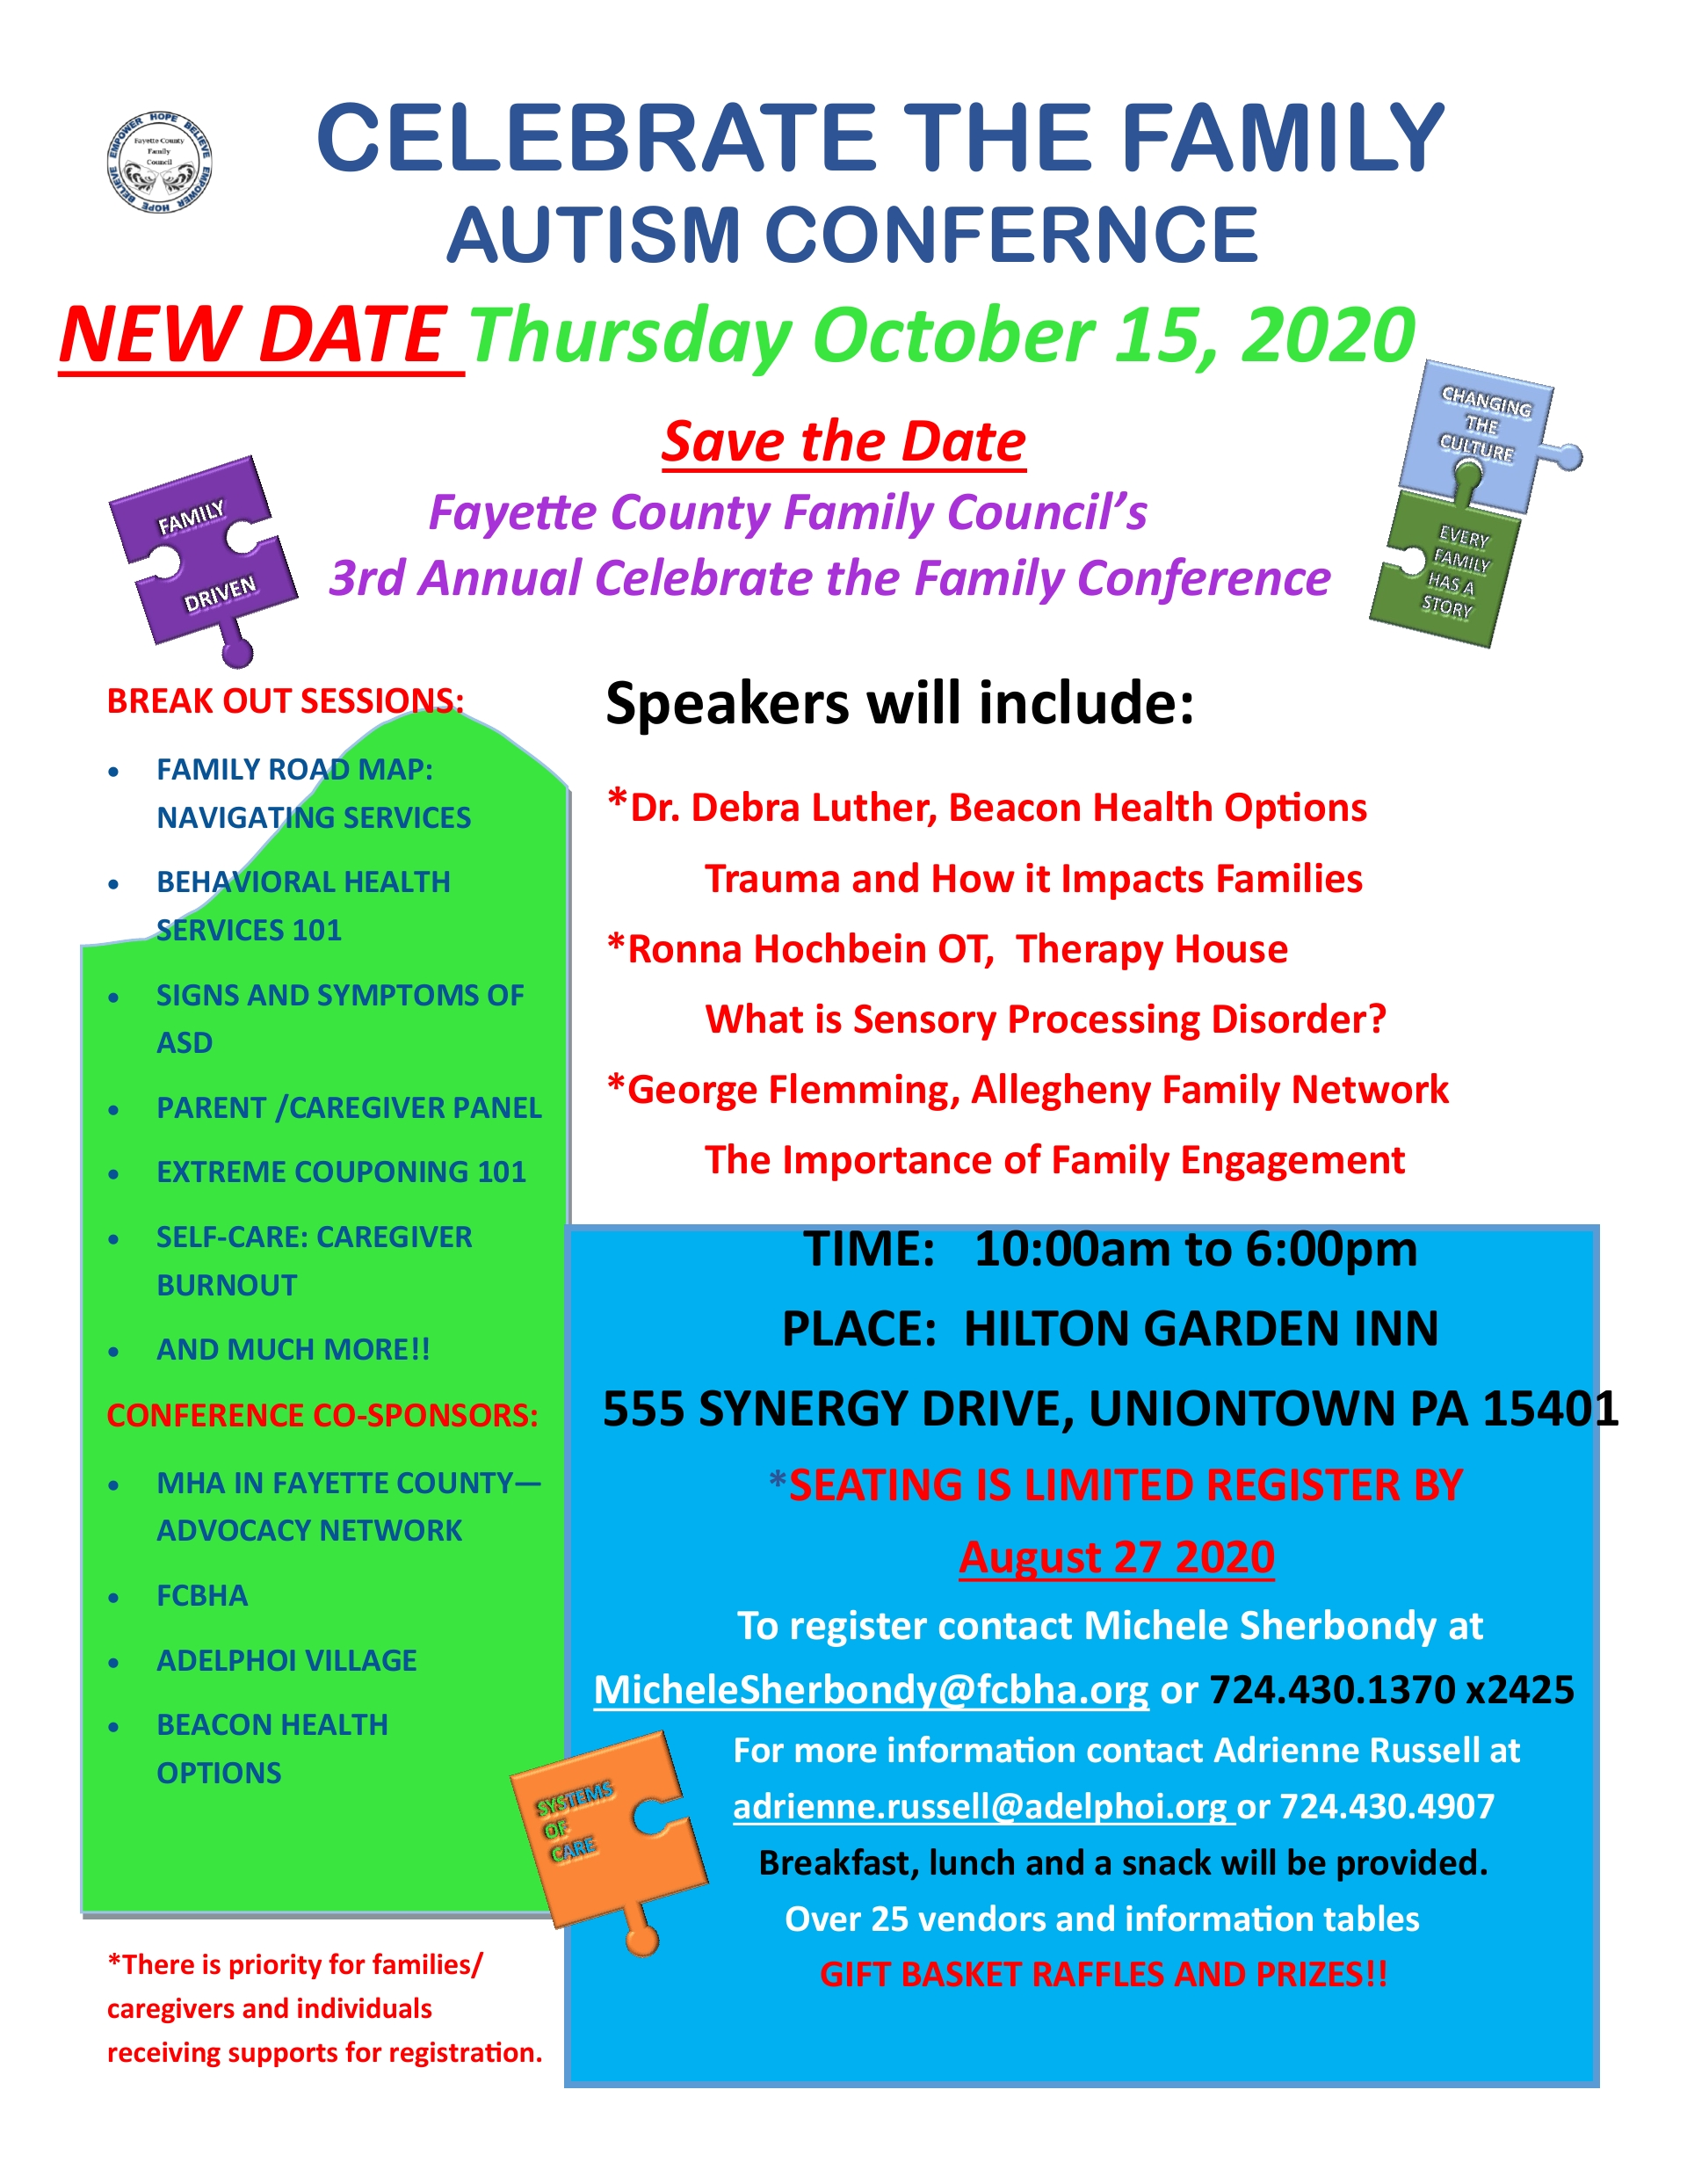 Fayette County Family Council's 3rd Annual Celebrate the Family Conference October 2020